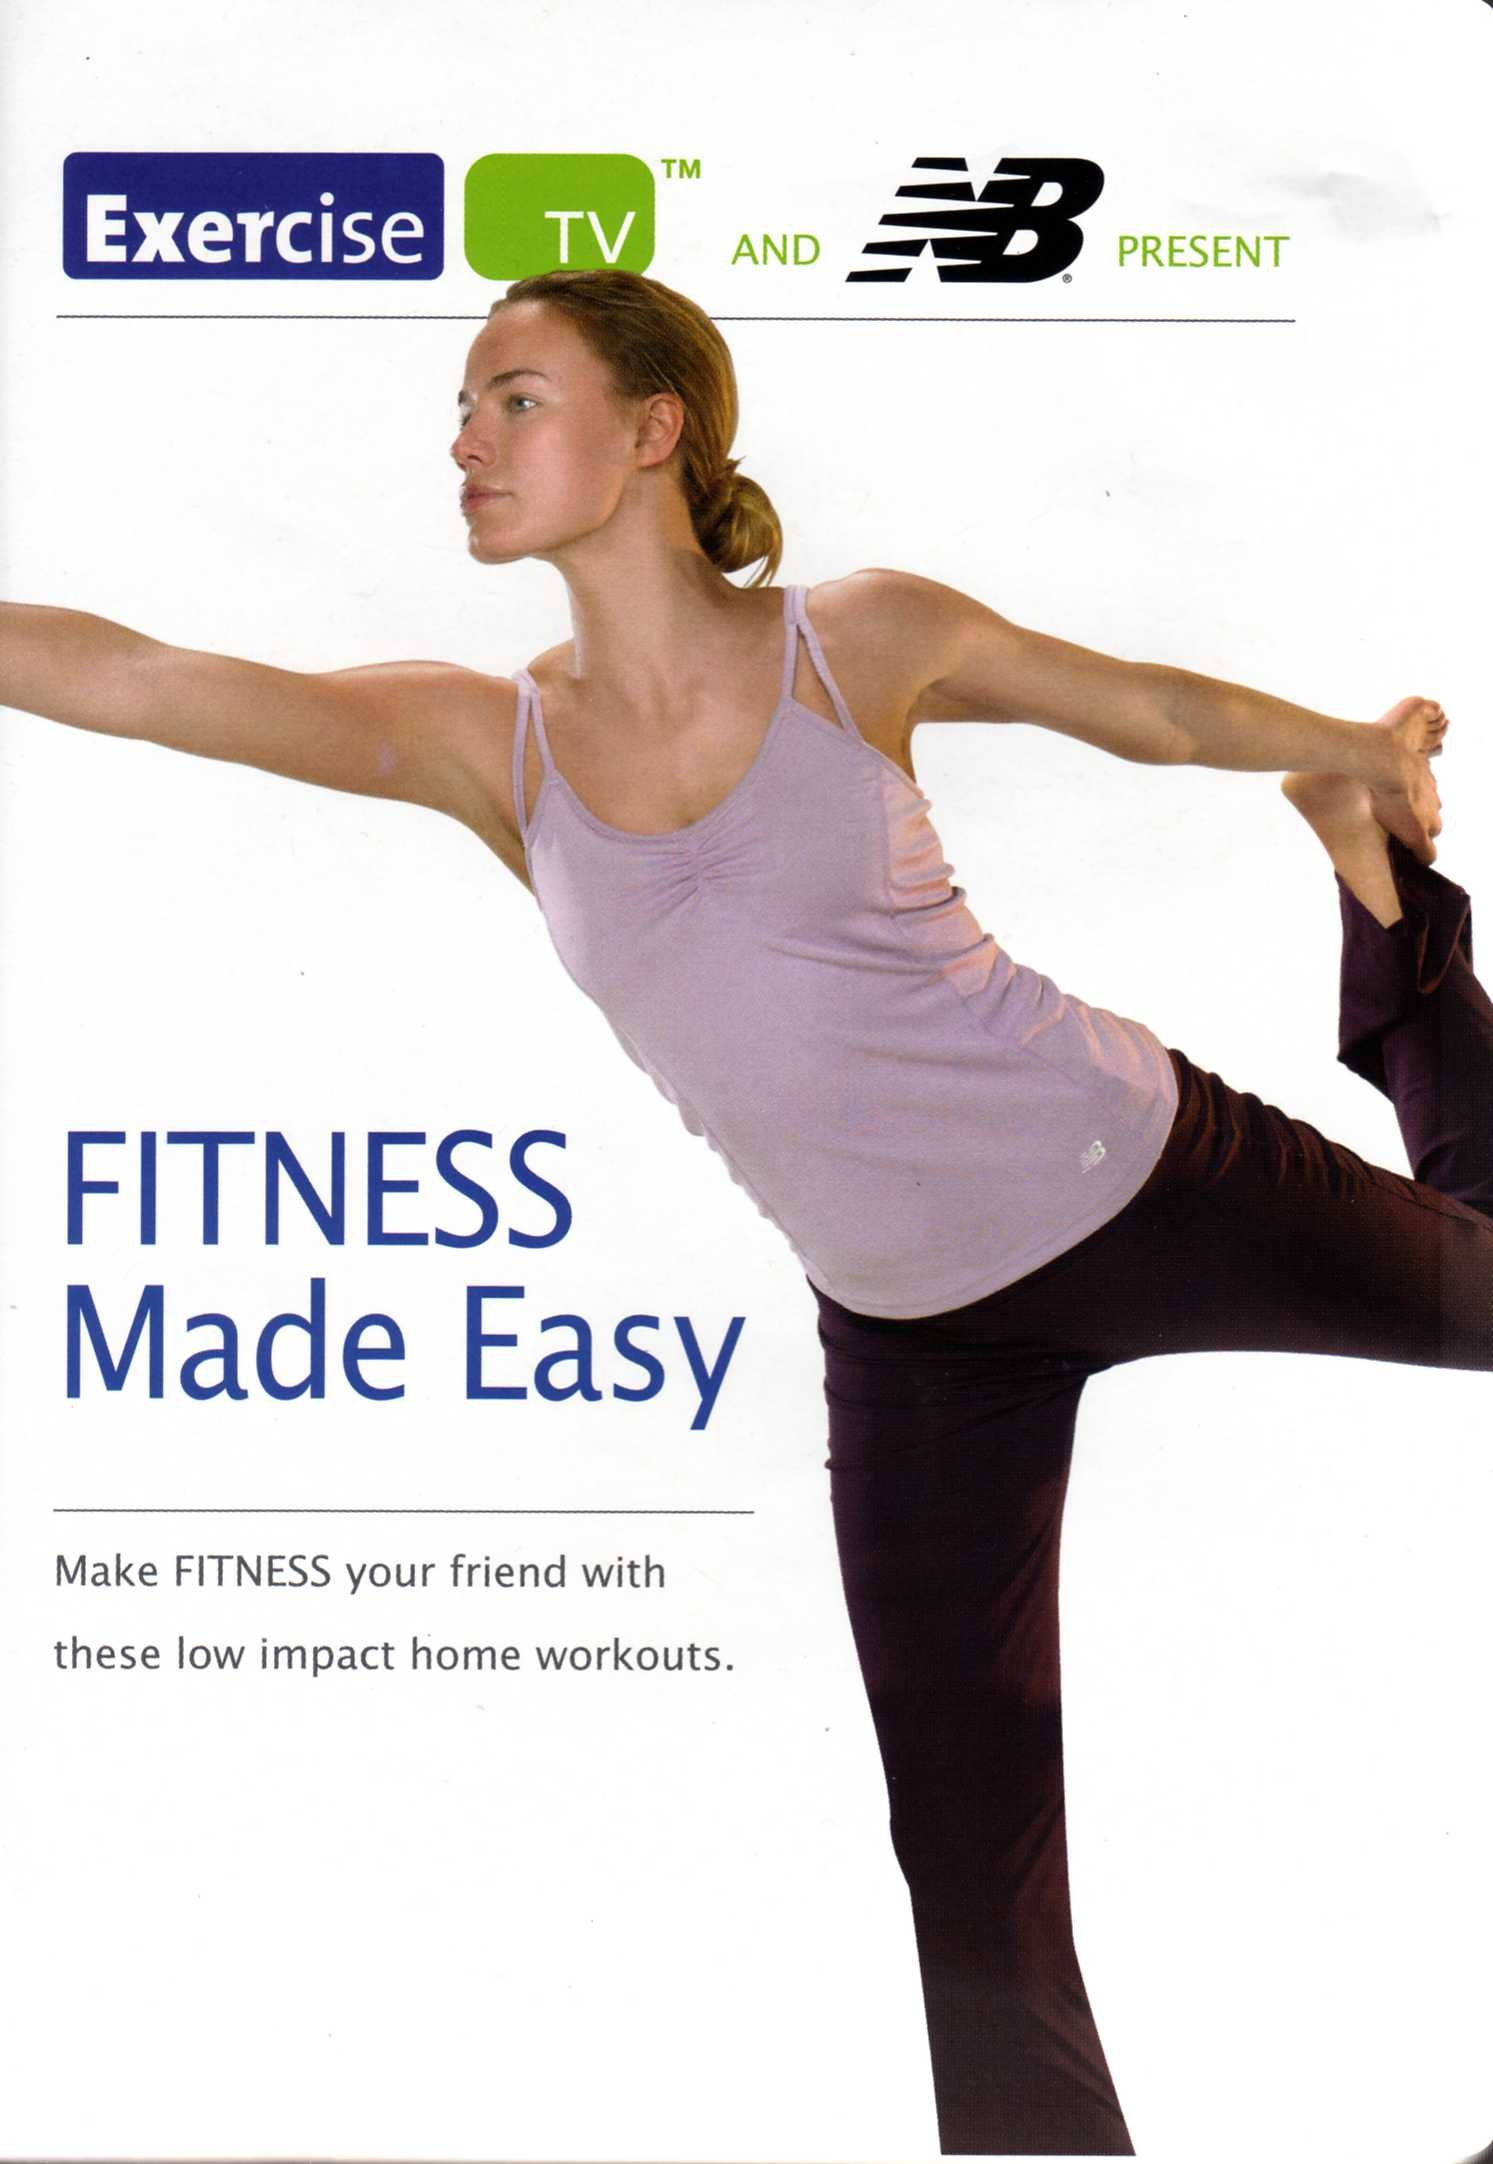 Fitness Made Easy - Exercise TV and NB Present